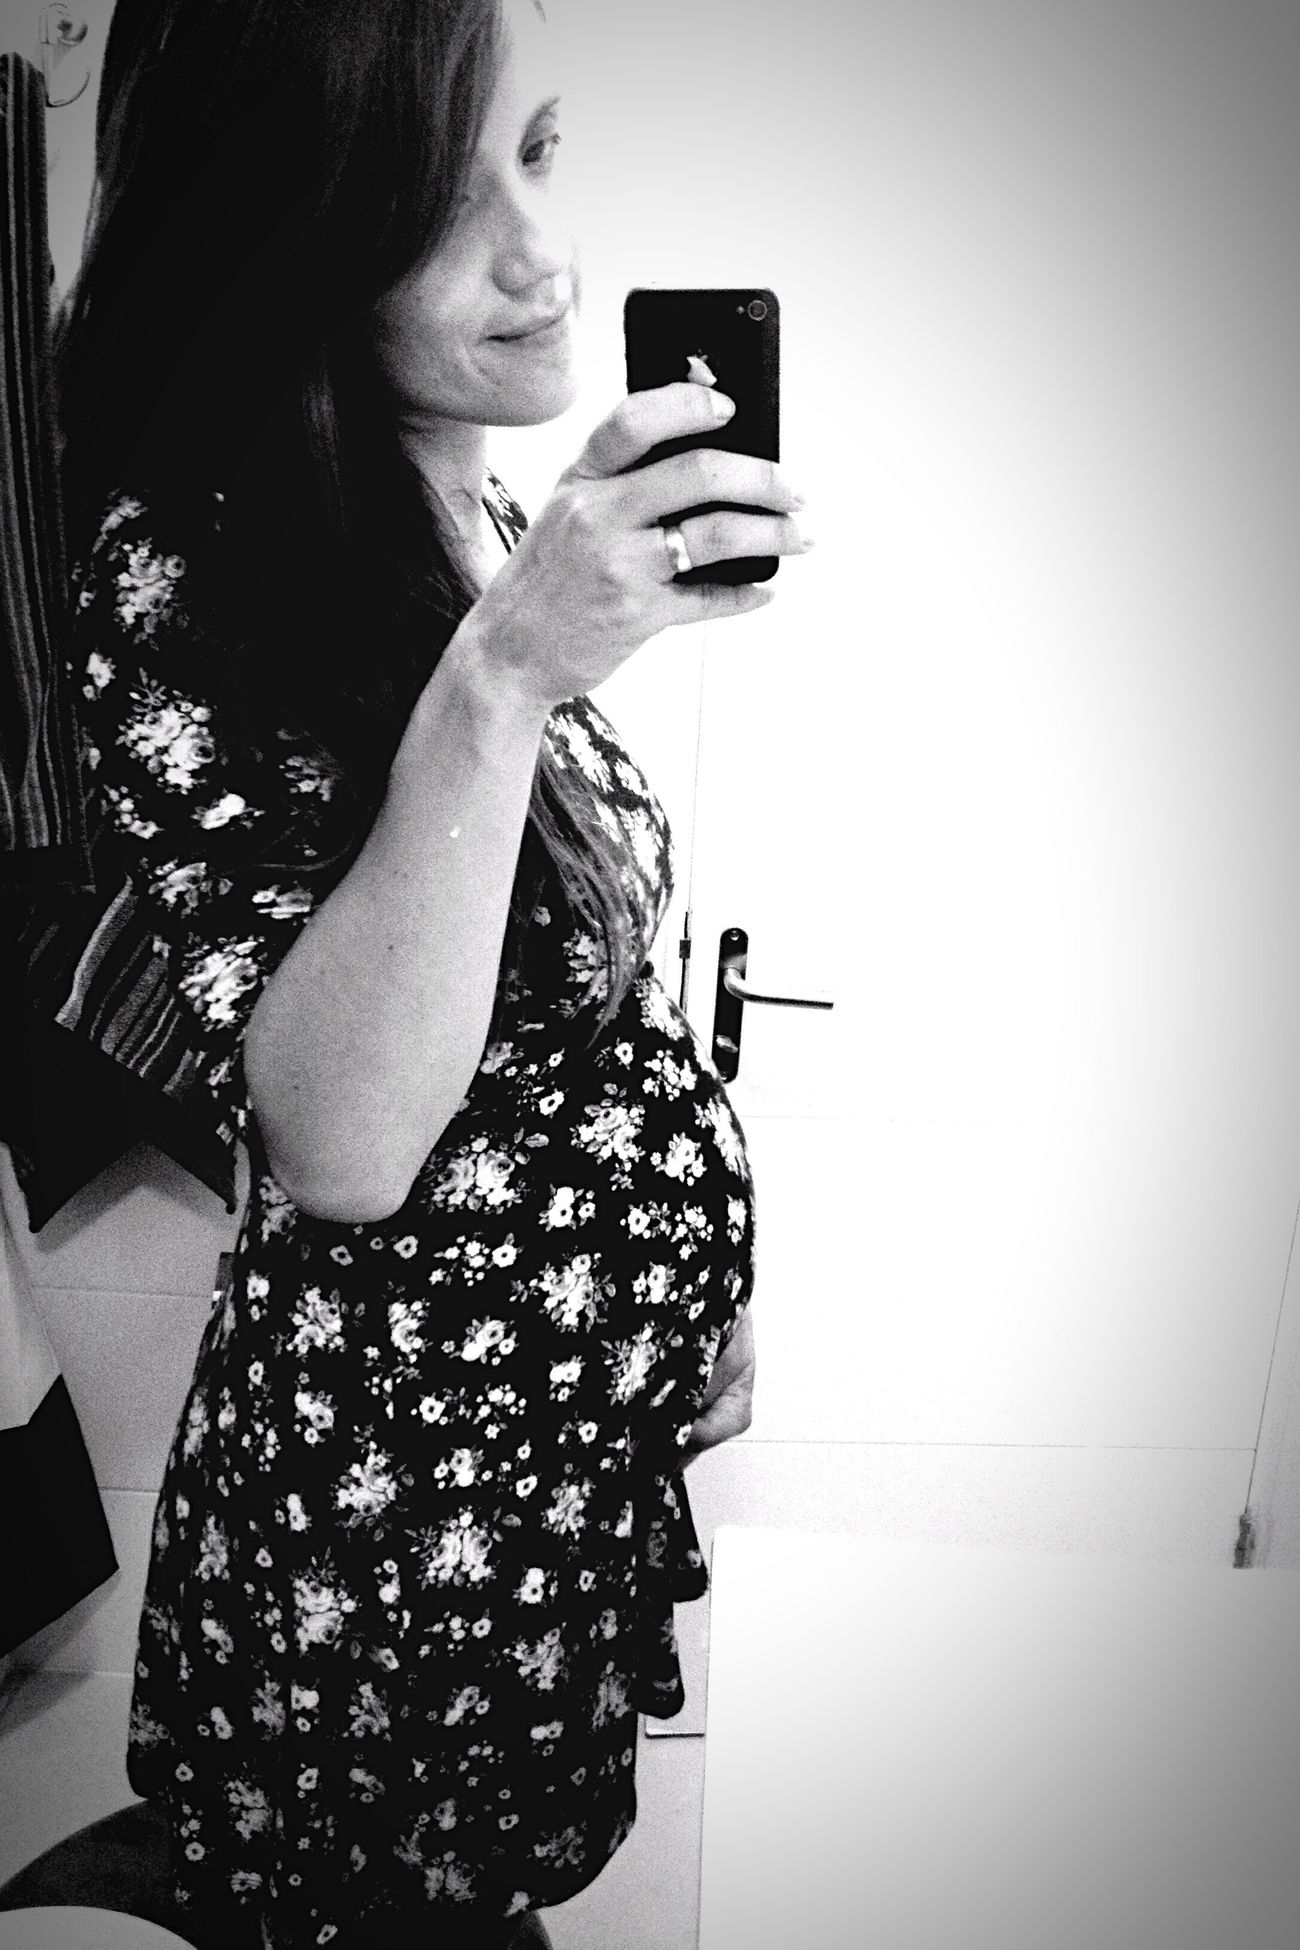 35 Weeks  Hello World Babyonboard Resist Bestrong Sweetlove Black&white